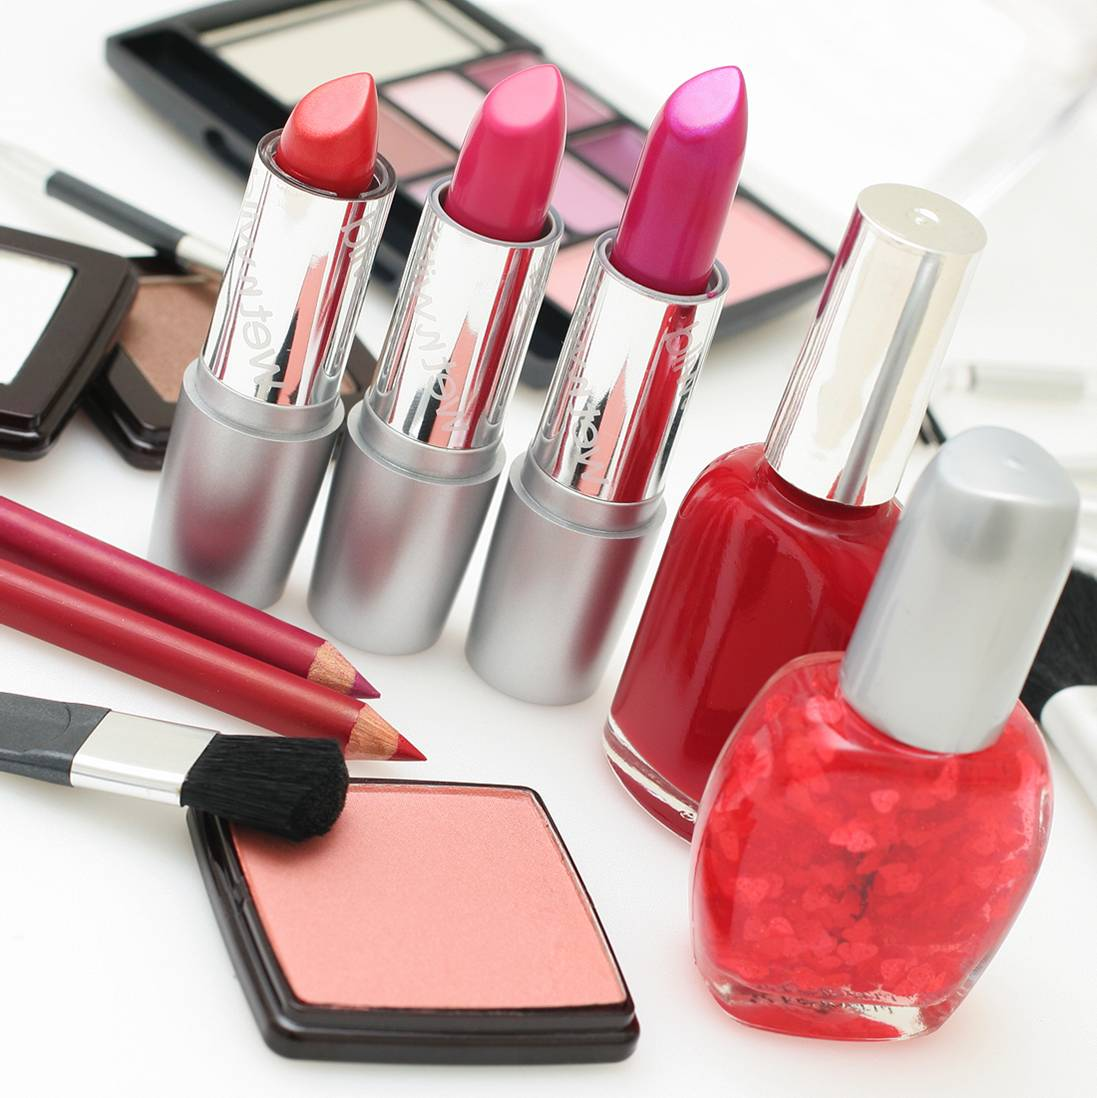 Buying cosmetics online